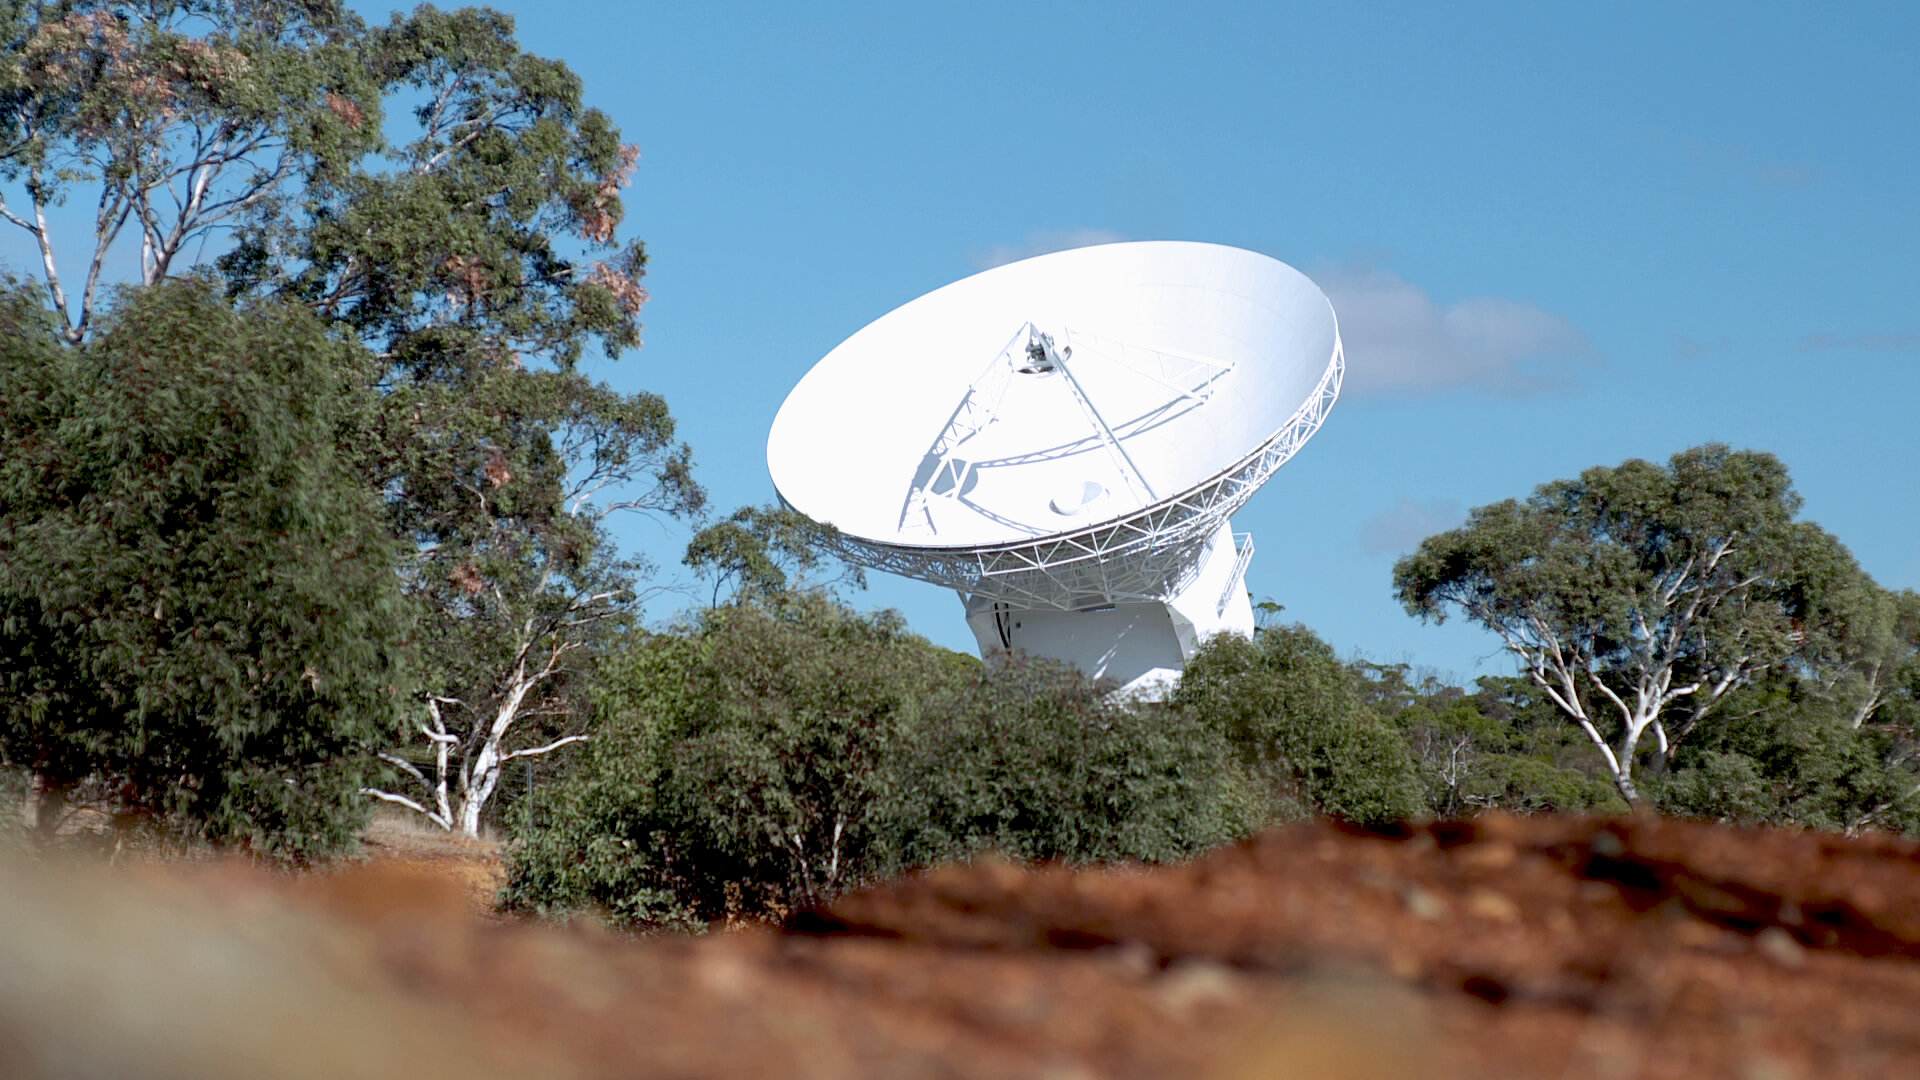 ESA's 35 m deep-space tracking dish in Australia was inaugurated in March 2003